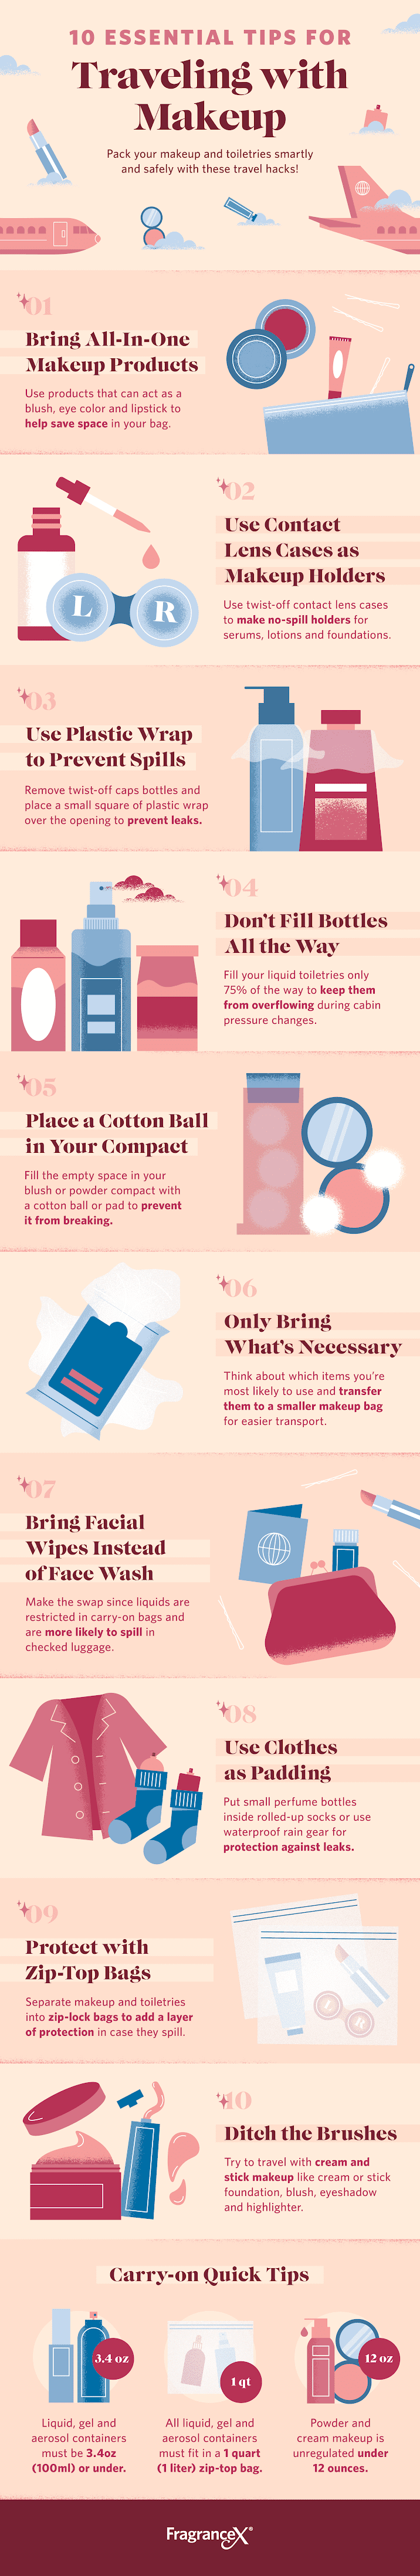 10 Essential Tips For Traveling with Makeup #infographic #Travel #infographics #Makeup #Traveling with Makeup #Tips